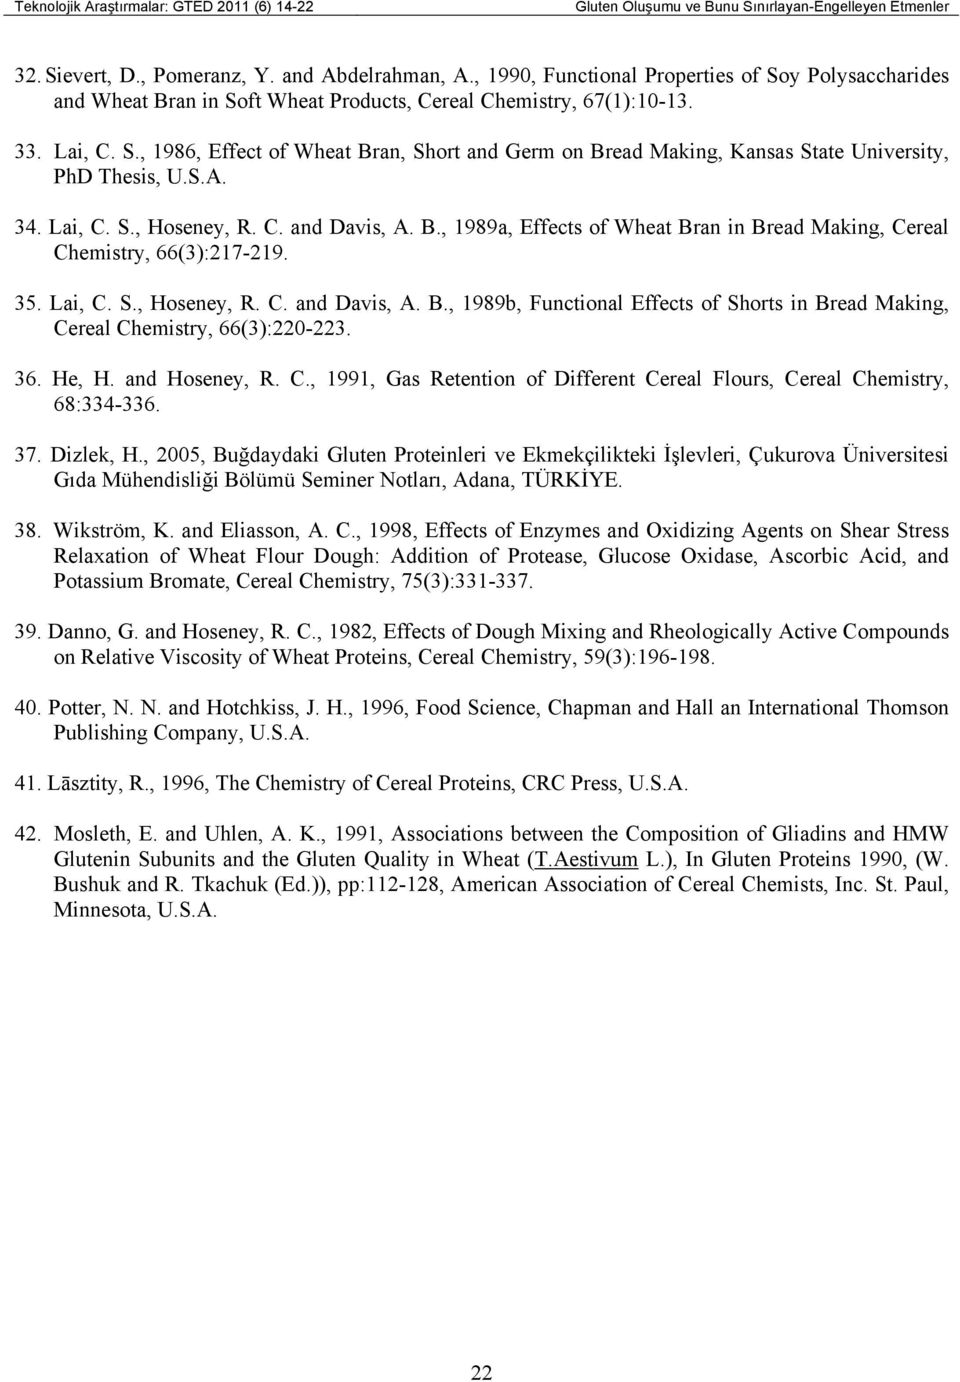 S.A. 34. Lai, C. S., Hoseney, R. C. and Davis, A. B., 1989a, Effects of Wheat Bran in Bread Making, Cereal Chemistry, 66(3):217-219. 35. Lai, C. S., Hoseney, R. C. and Davis, A. B., 1989b, Functional Effects of Shorts in Bread Making, Cereal Chemistry, 66(3):220-223.